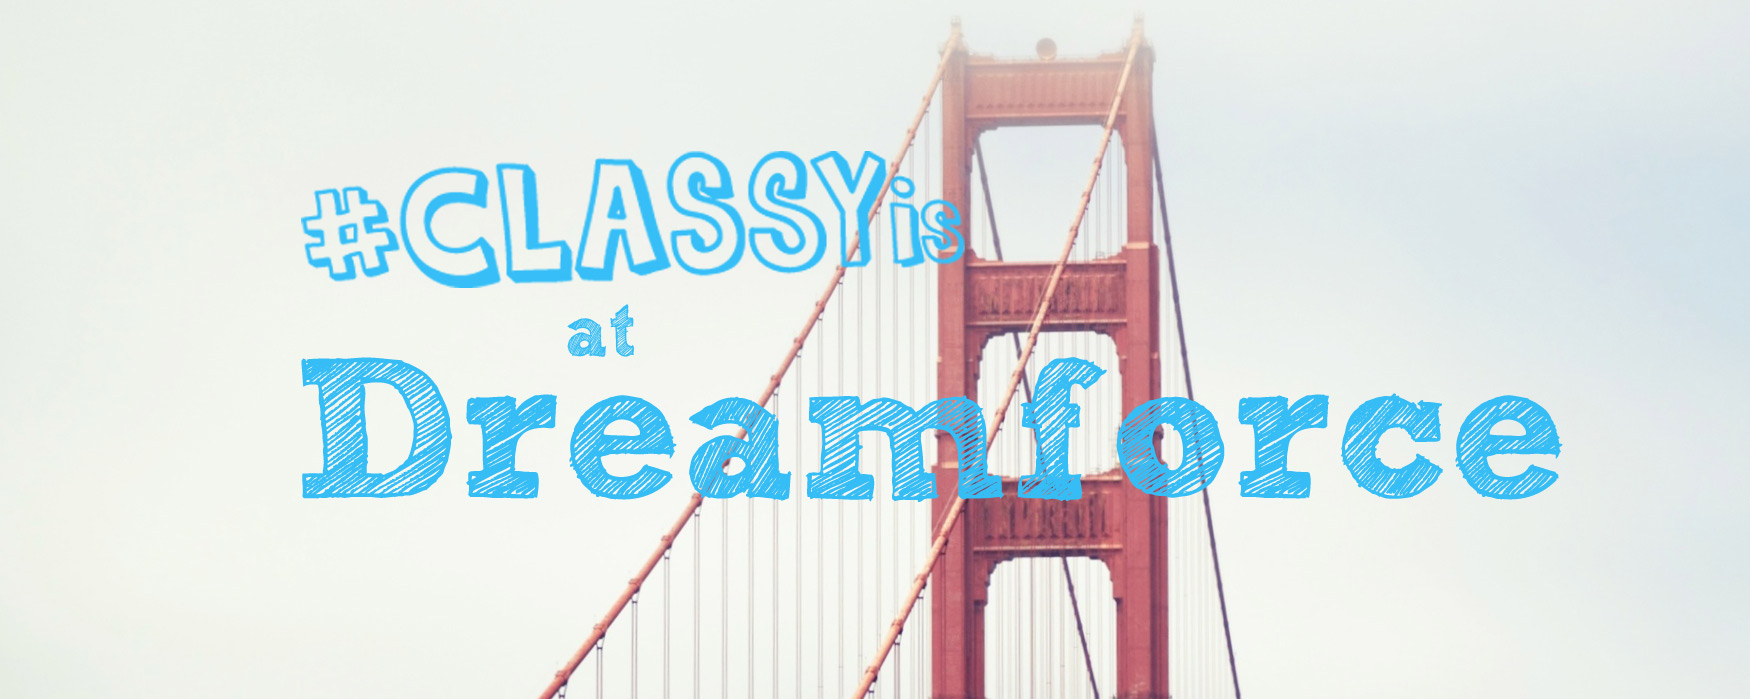 dreamforce-classy-is-2